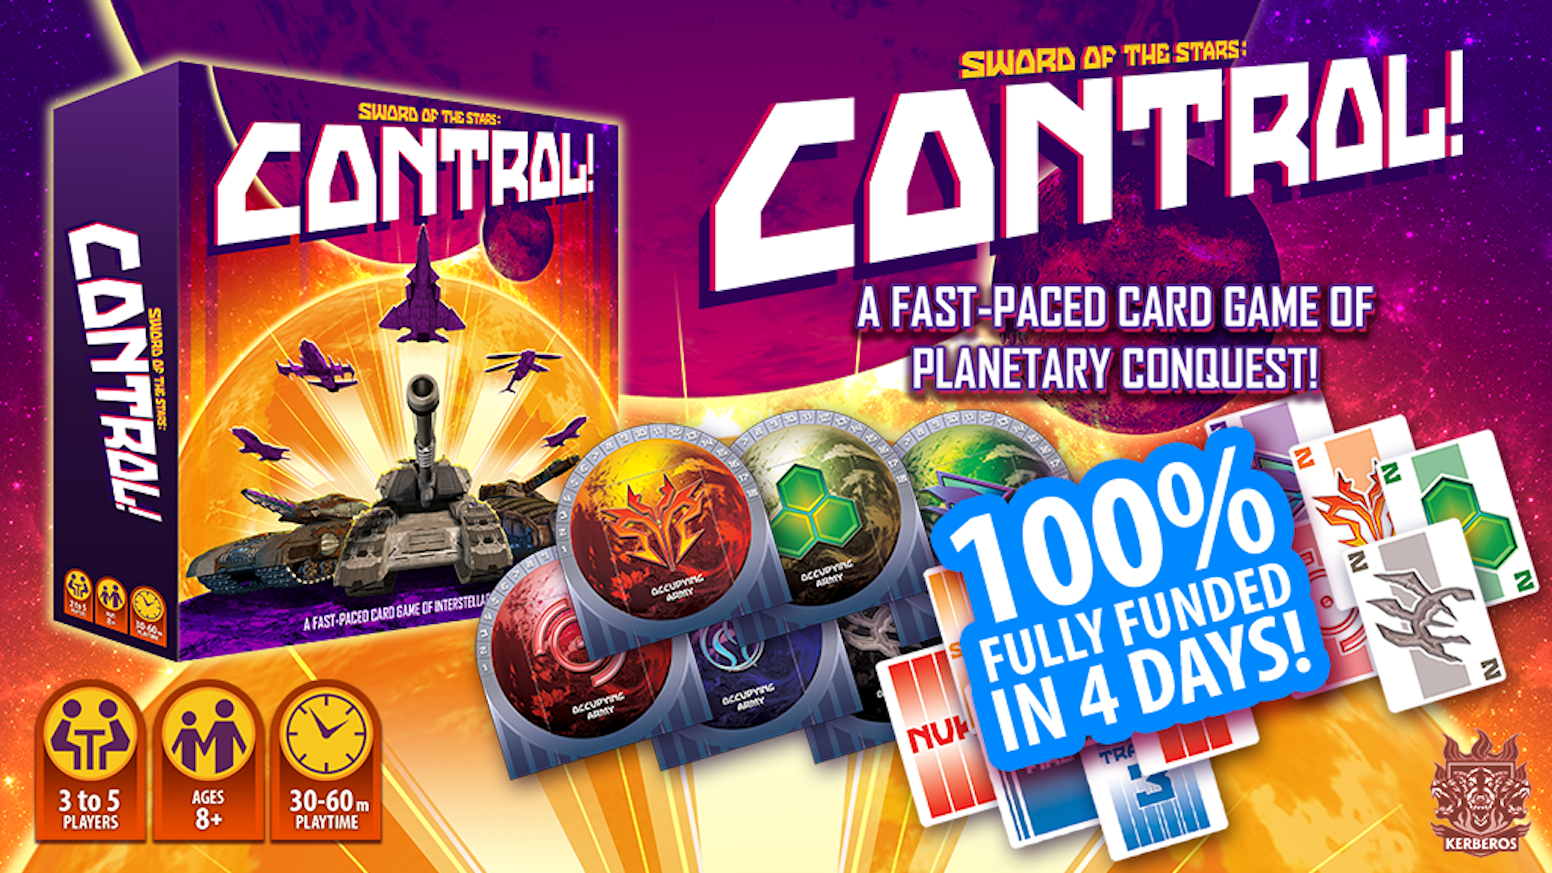 A fast-paced card game of planetary conquest for 3-5 players!